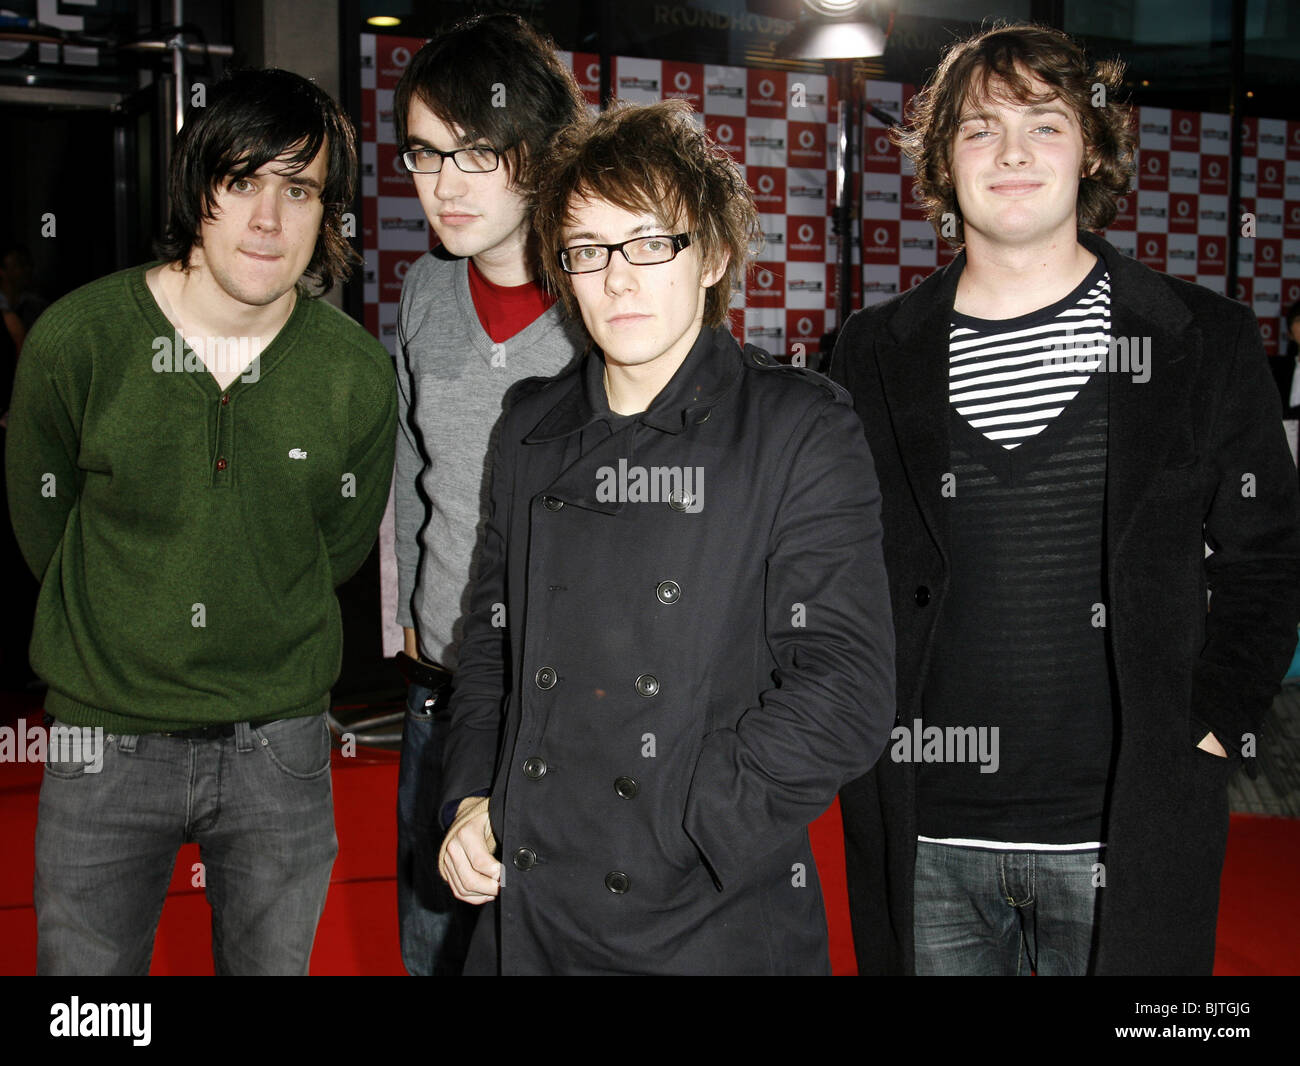 THE AUTOMATIC VODAFONE LIVE MUSIC AWARDS ROUNDHOUSE CAMDEN LONDON 11 October 2006 - Stock Image